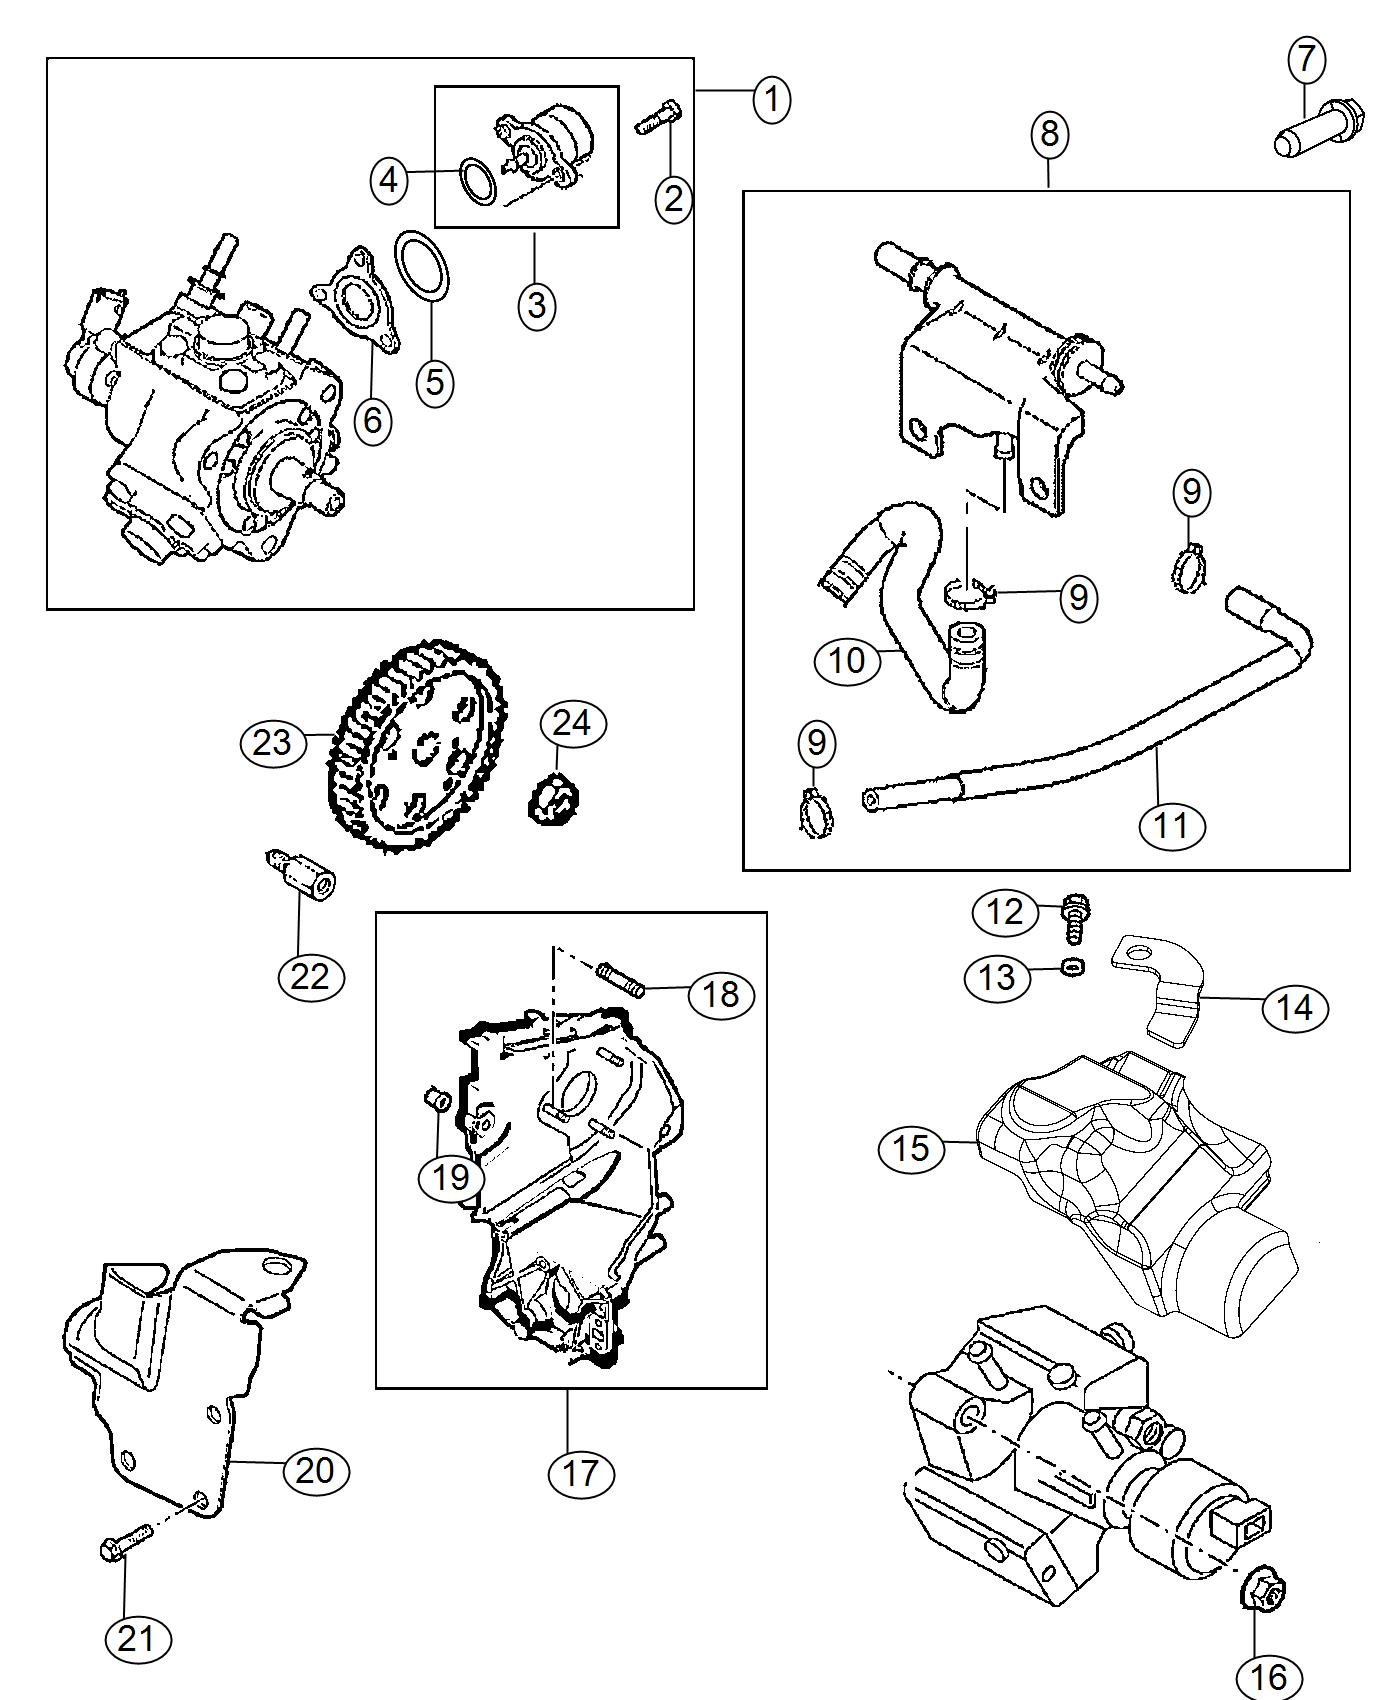 Jeep Cherokee Pump Fuel Injection Export Engine